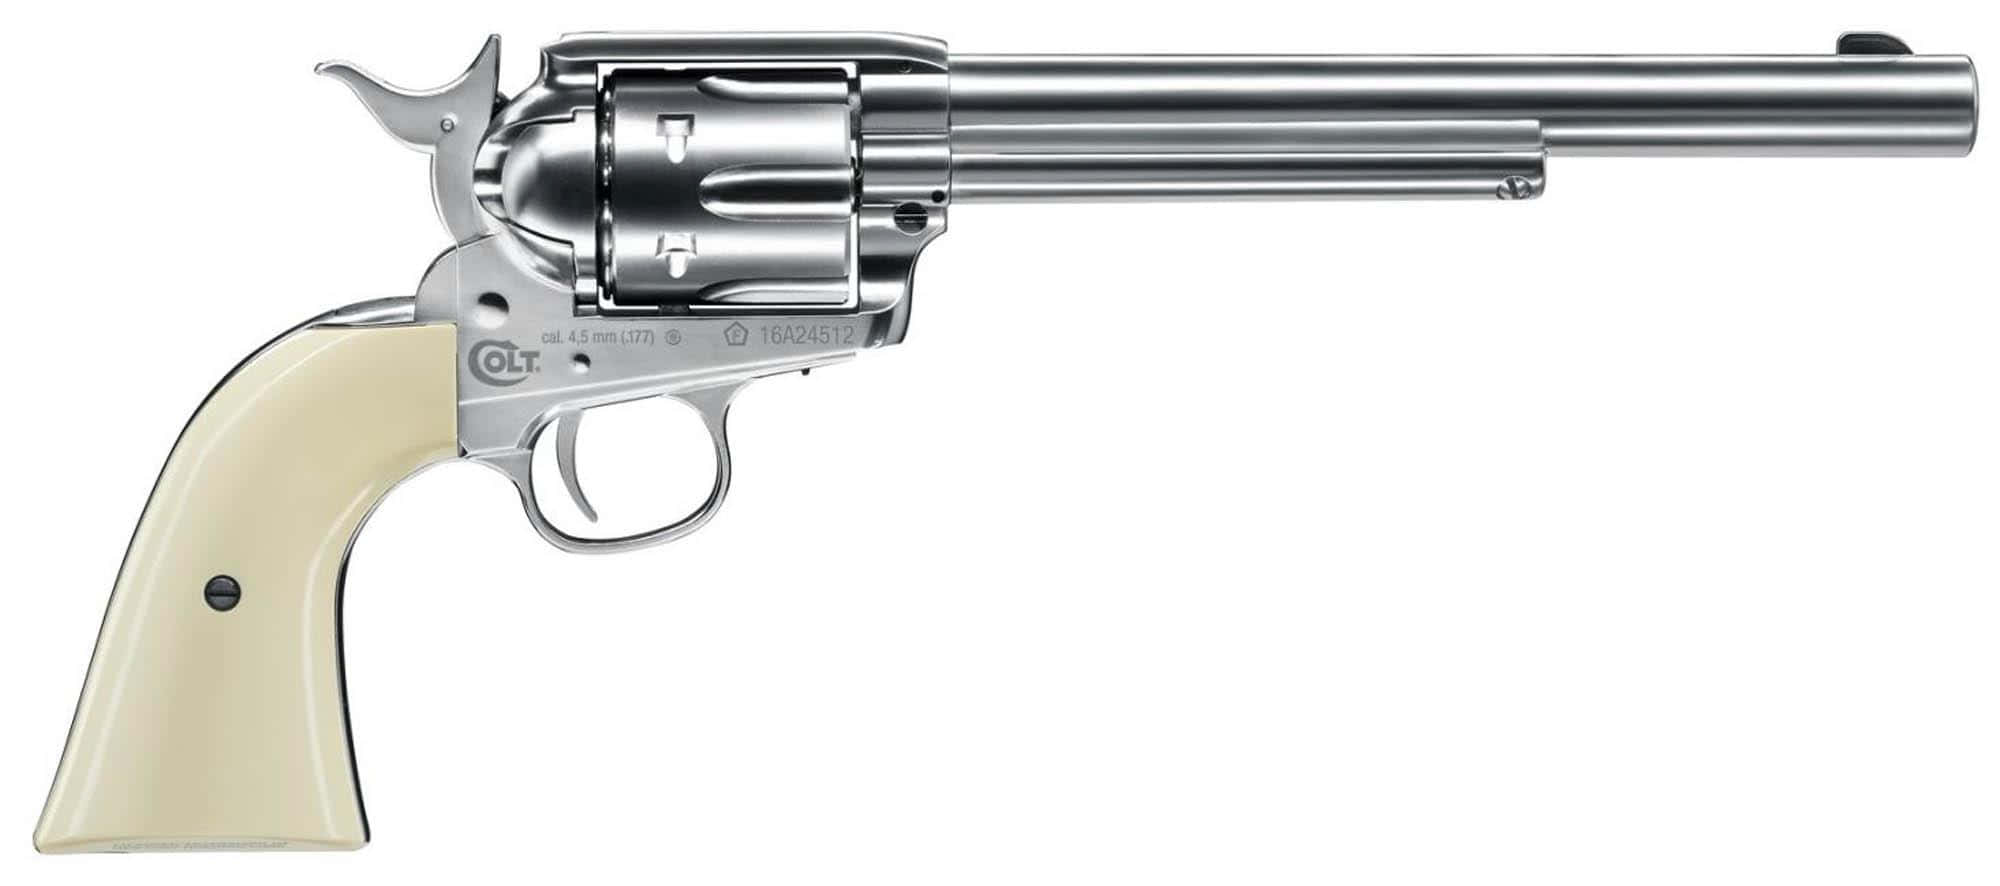 ACP202-2-Revolver plomb Colt single action .45 nickel - UMAREX - ACP207